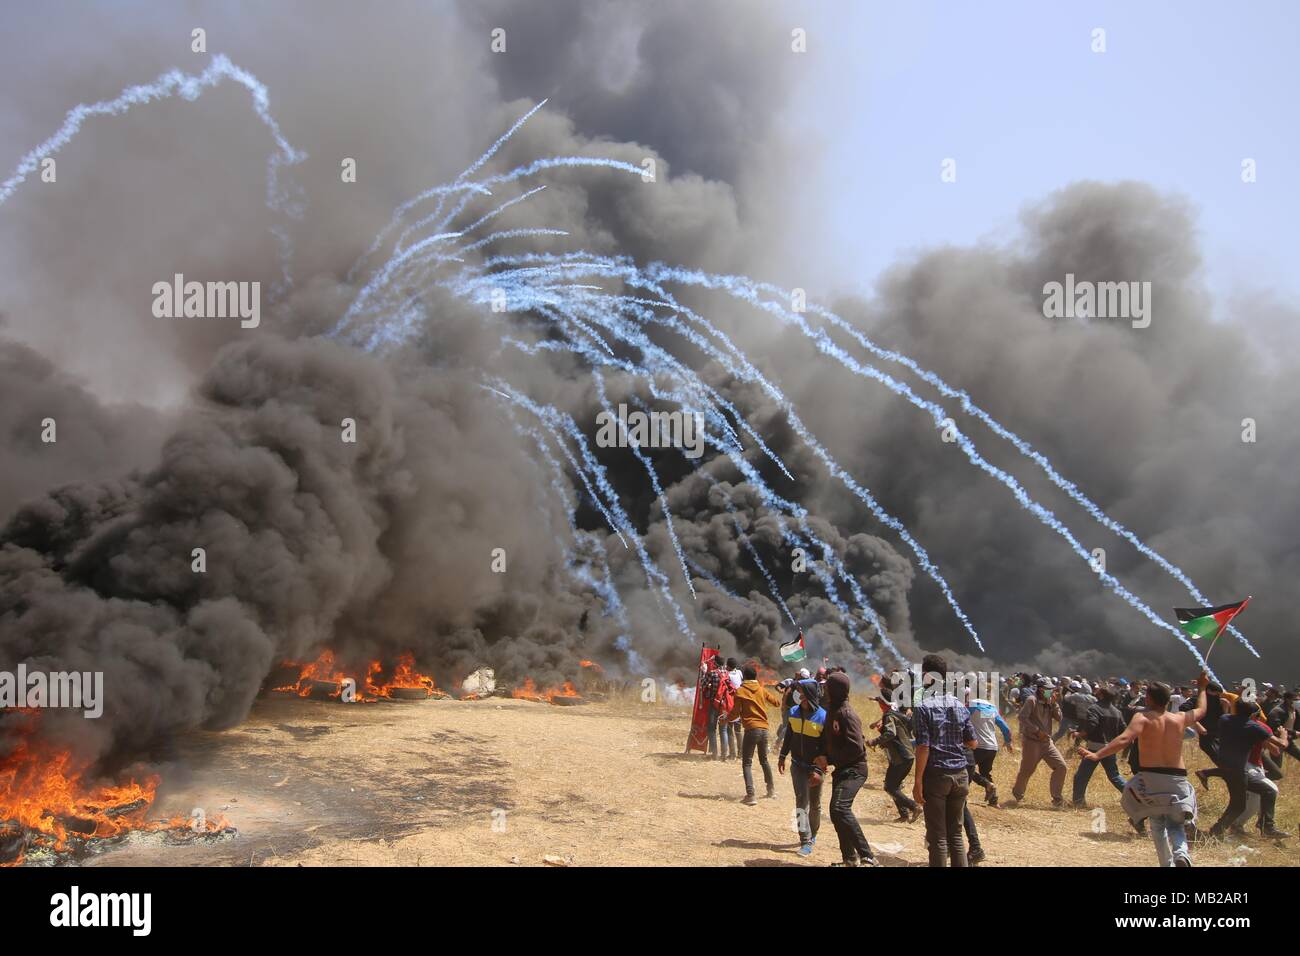 Gaza. 6th Apr, 2018. Palestinian protesters run for cover from tears gas canisters fired by Israeli troops during clashes on the Gaza-Israel border, east of Gaza City on April 6, 2018. Hundreds of Palestinian demonstrators began Friday to set fire to dozens of car tires near the border between eastern Gaza Strip and Israel in a bid to make a shield of black smoke to protect themselves from Israeli soldiers' gunfire. Credit: Khaled Omar/Xinhua/Alamy Live News - Stock Image